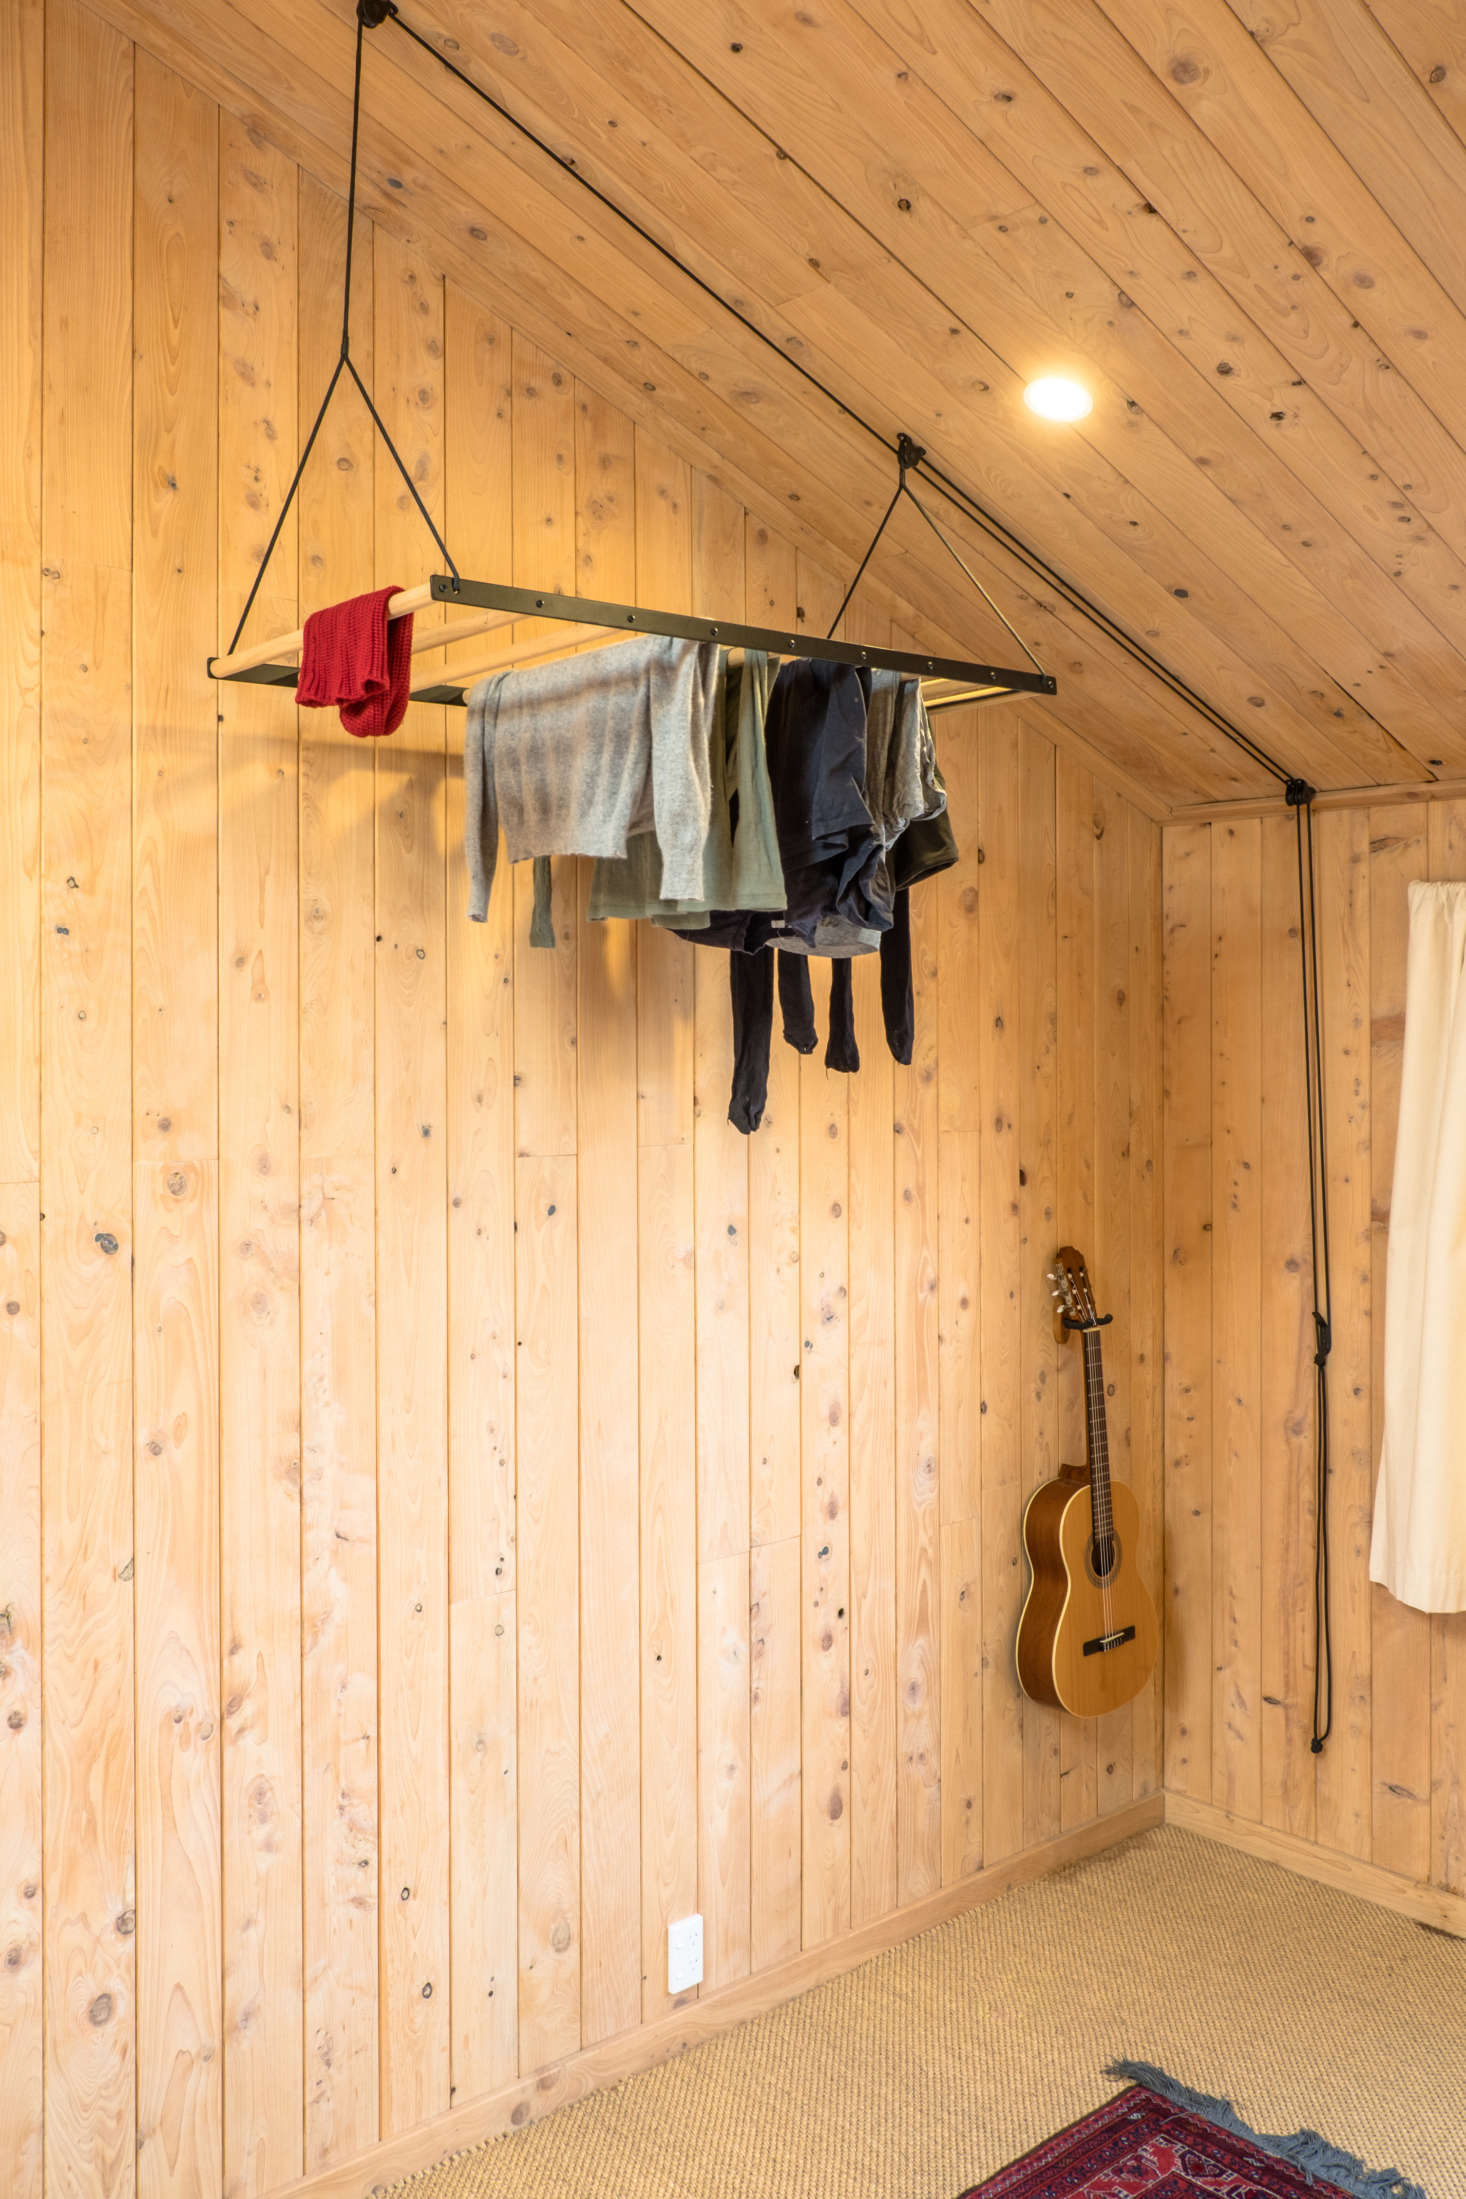 A George & Willy pulley system drying rackhangs in a corner of the master bedroom where it takes up little space and allows clothes to dry in the warmest air. Read about the design in Object of Desire: A Hanging Laundry Rack.